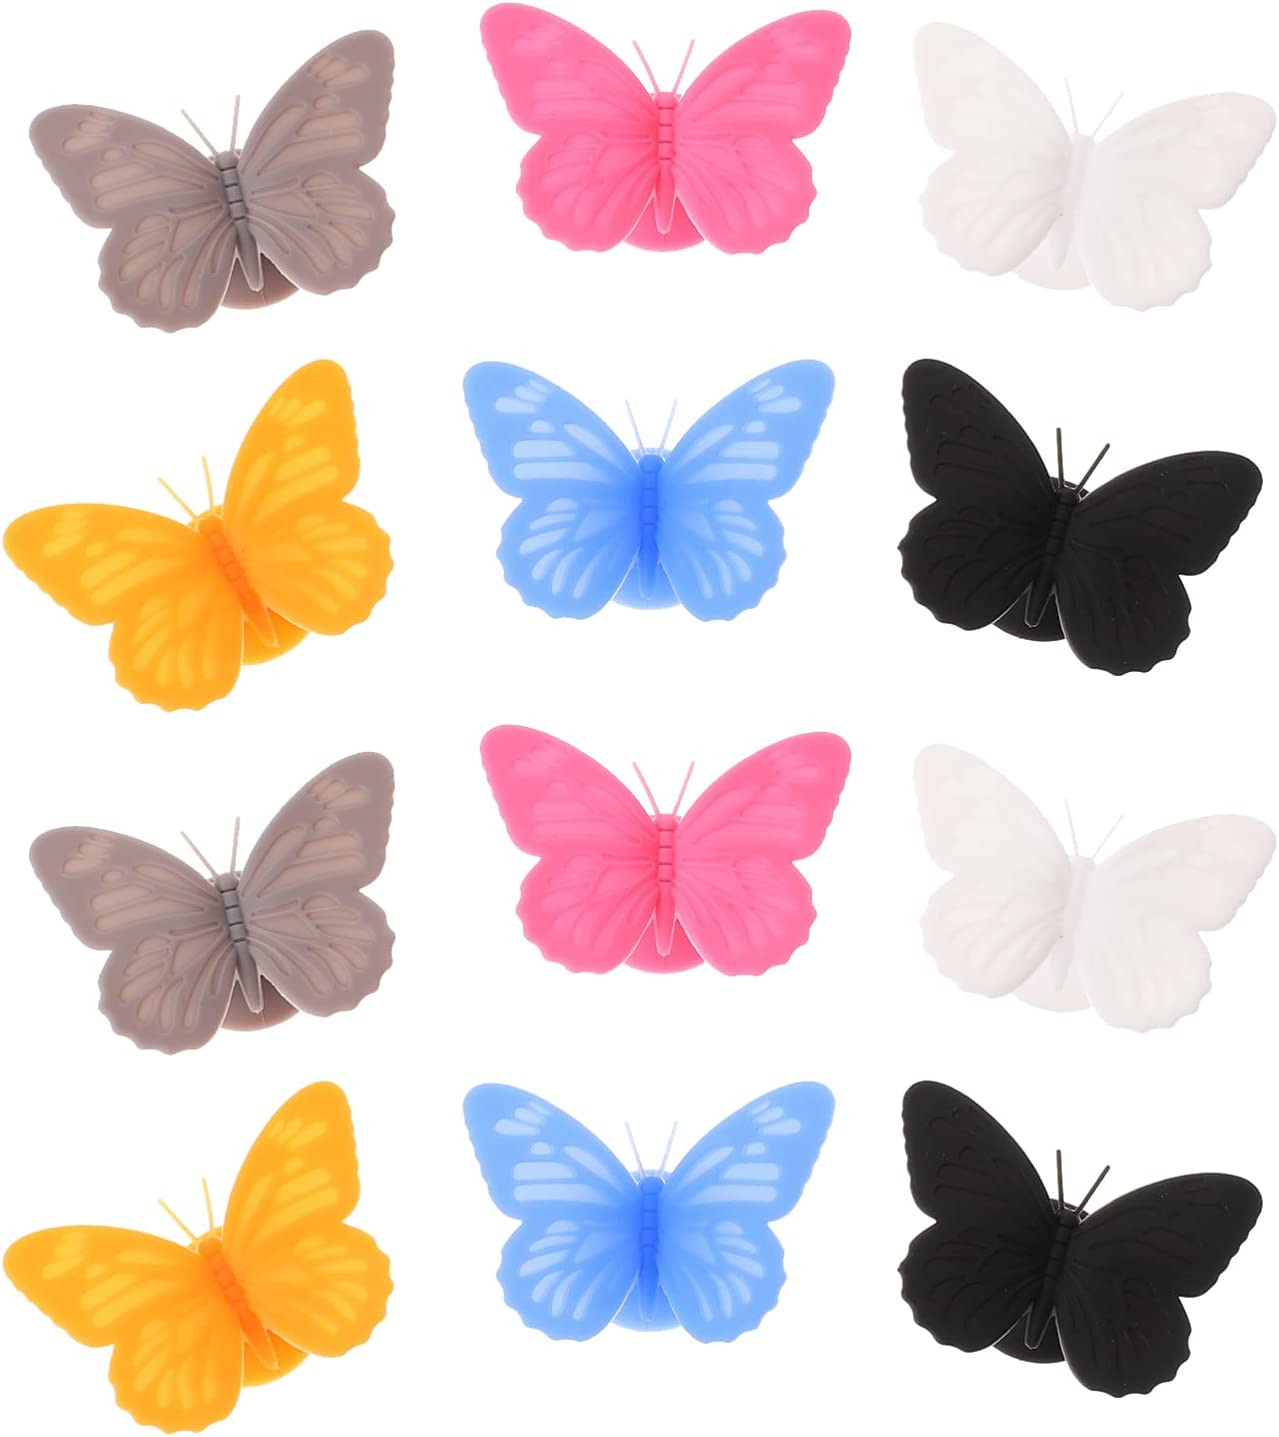 FRCOLOR 12pcs Wine Glass Markers Silicone Gl Set Sale Special price for a limited time Special Price Butterfly Drink